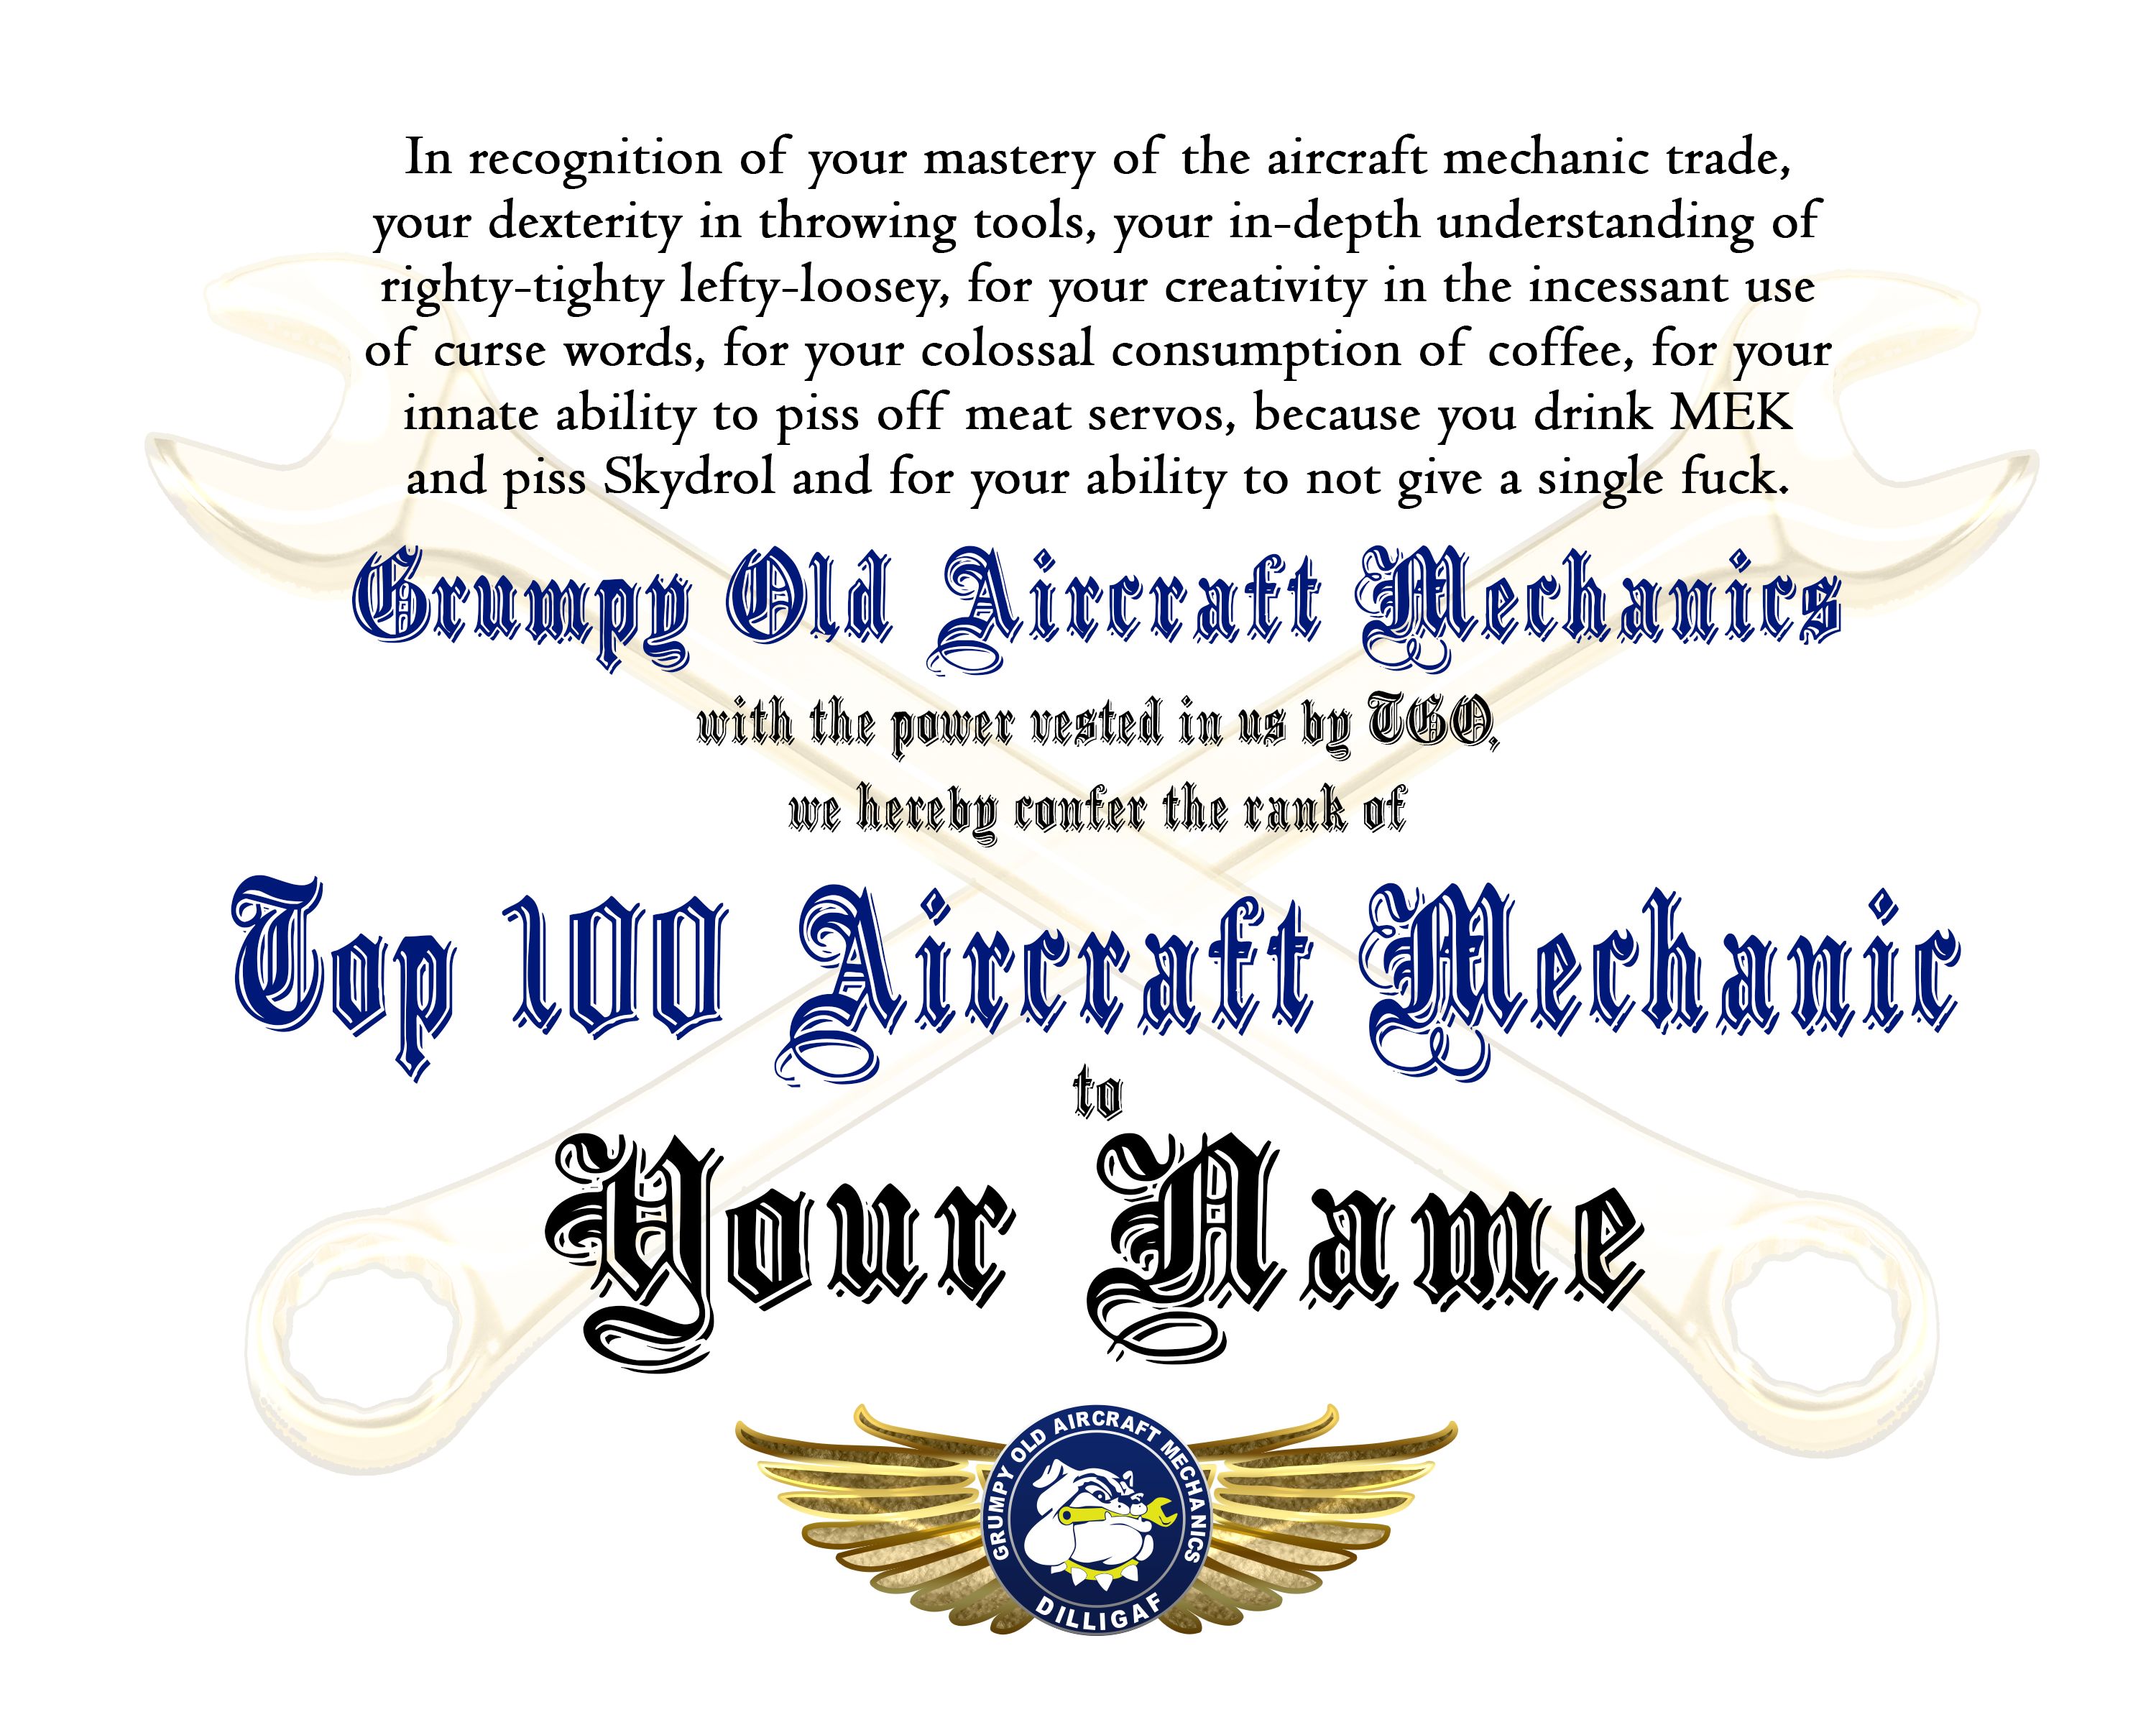 Top 100 Aircraft Mechanic Award Certificate (frame not included)